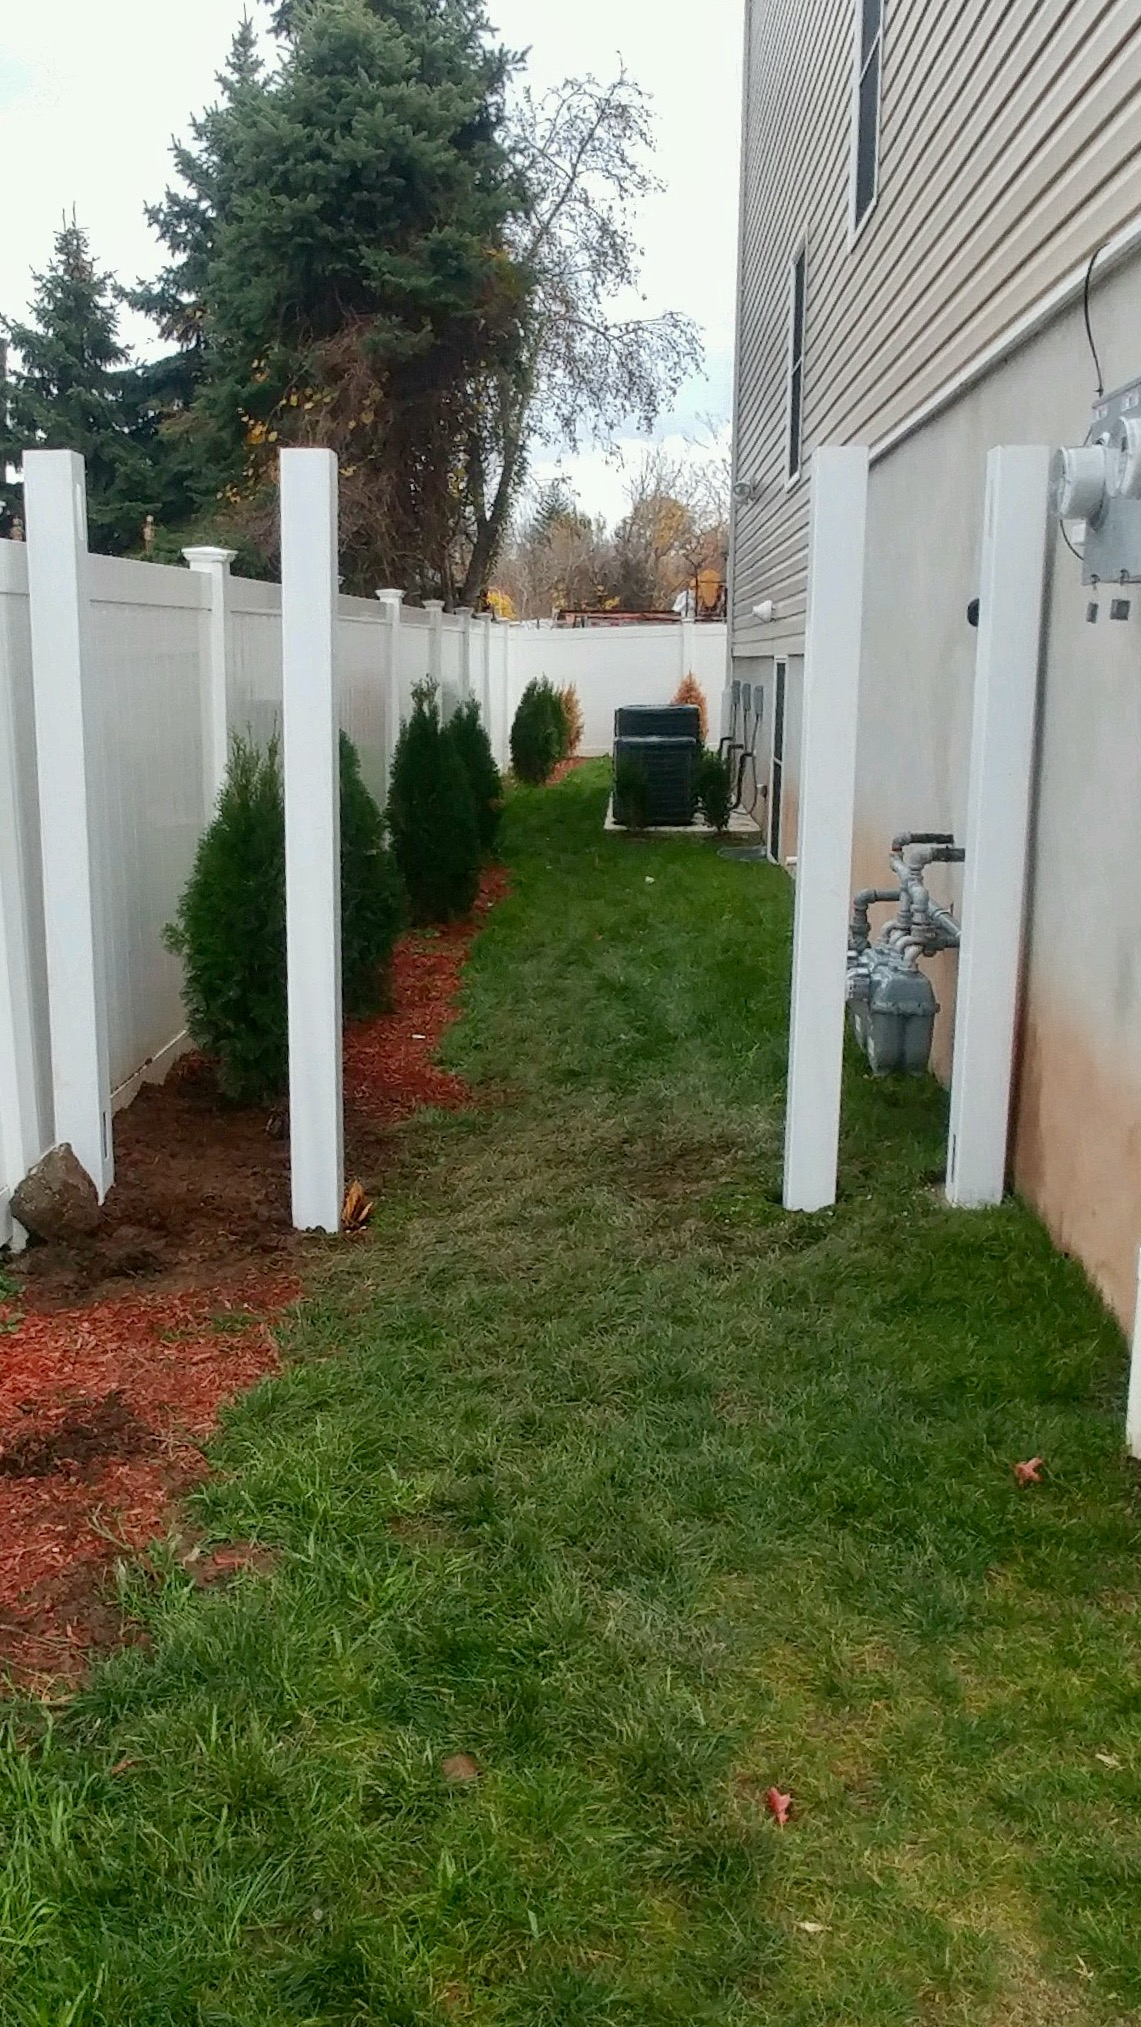 Vinyl Fence Posts being set for a vinyl fence gate installation